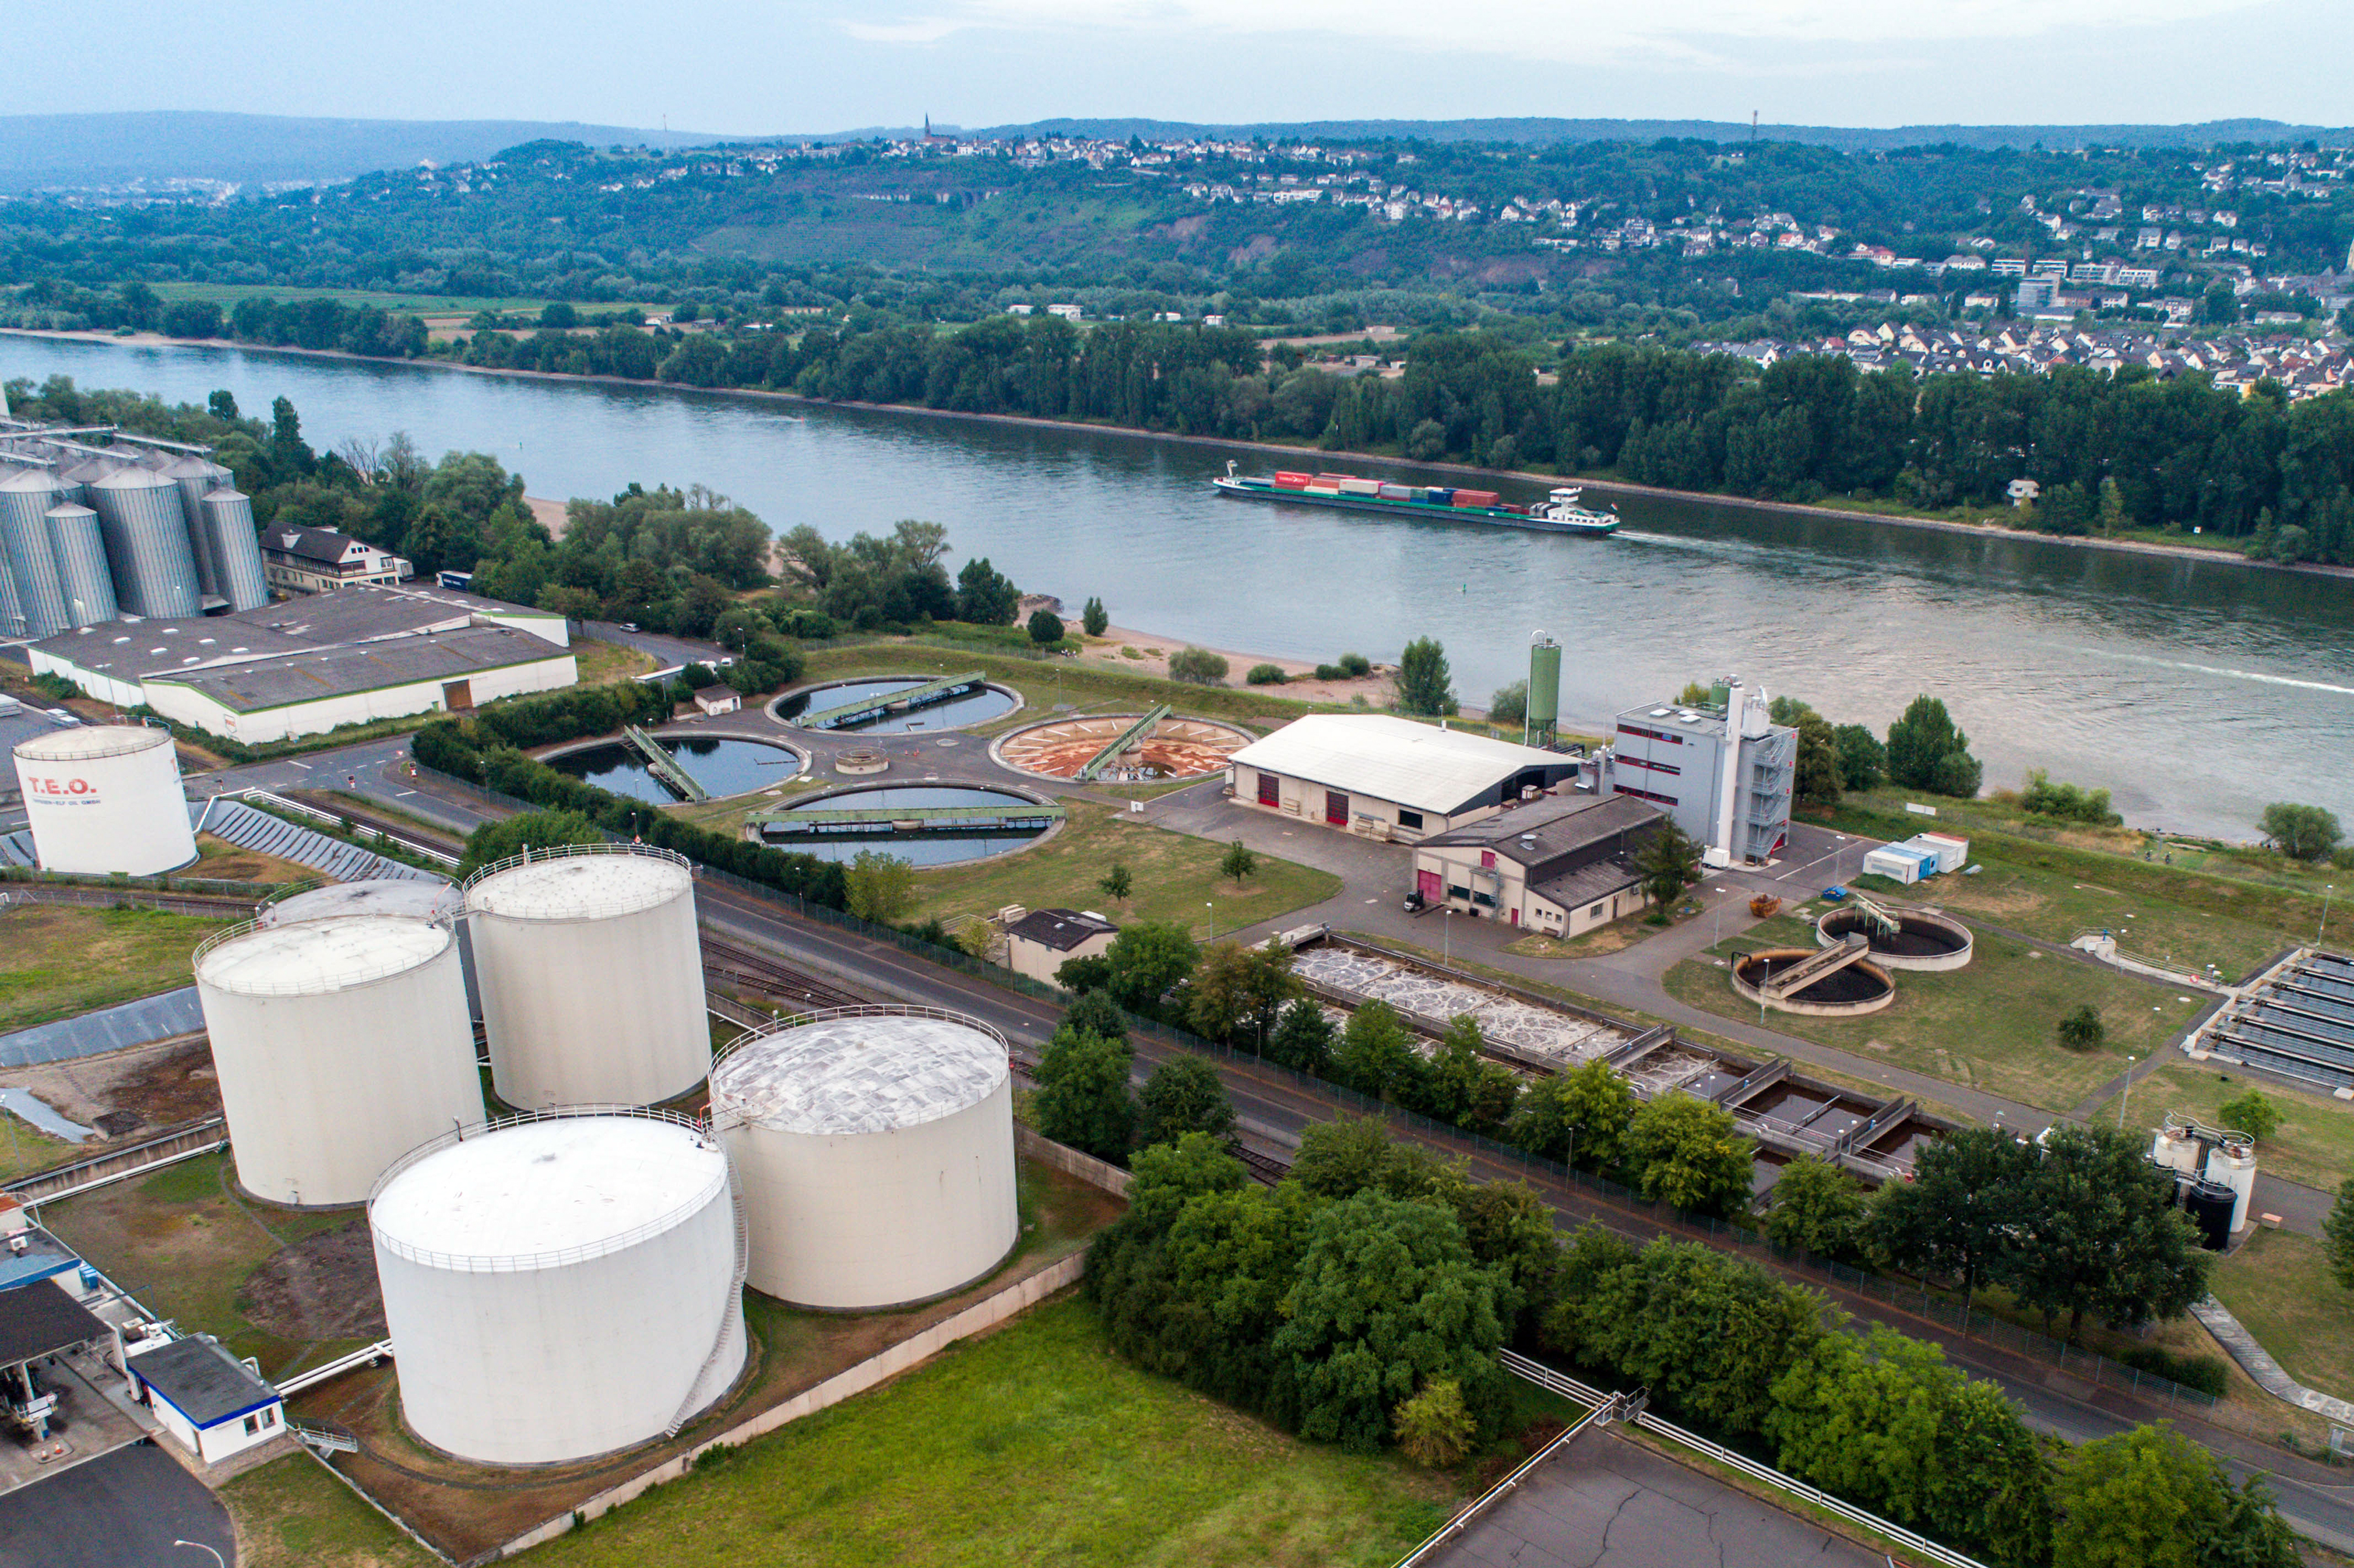 Koblenz GERMANY 21.07.2018 Aerial view of modern industrial sewage treatment plant beside the rhine river.